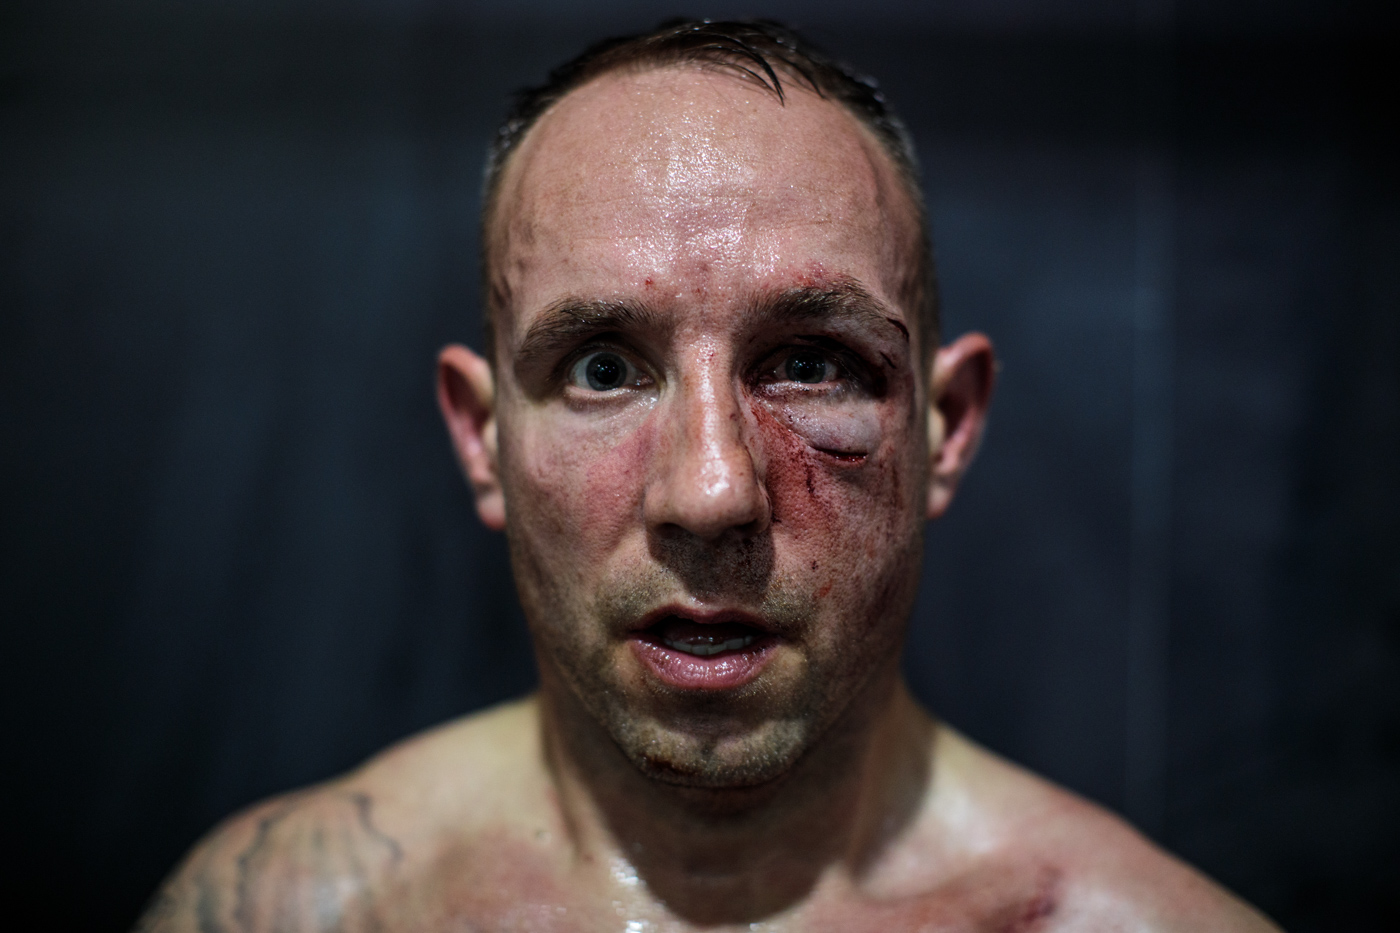 MANCHESTER, ENGLAND: Bare-knuckle boxer Paul Stredder, 35 from the Wirral, poses for a photo after his fight at an Ultimate Bare-Knuckle Boxing (UBKB) event at Bowlers Exhibition Centre on August 4, 2018.